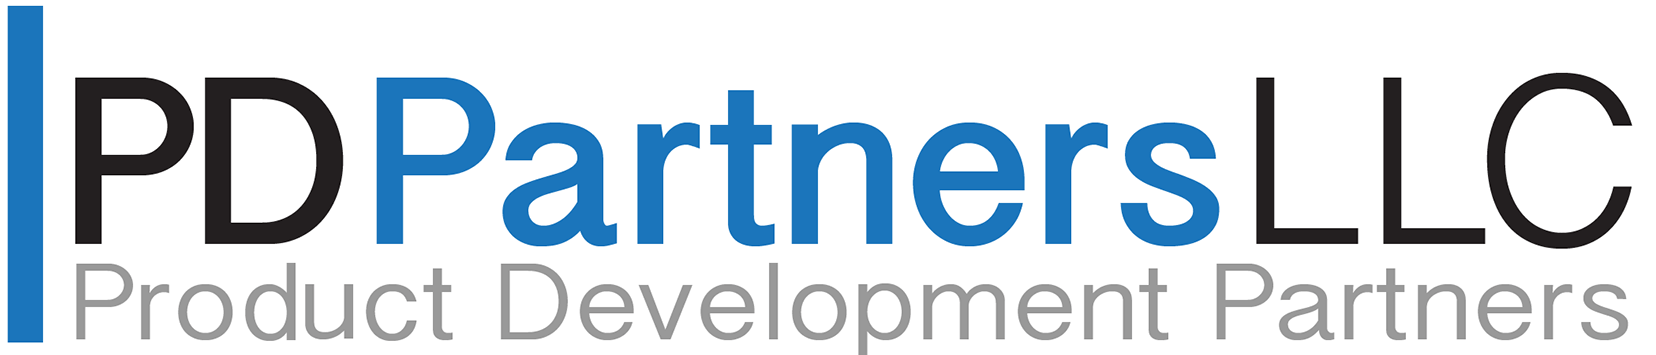 PD Partners